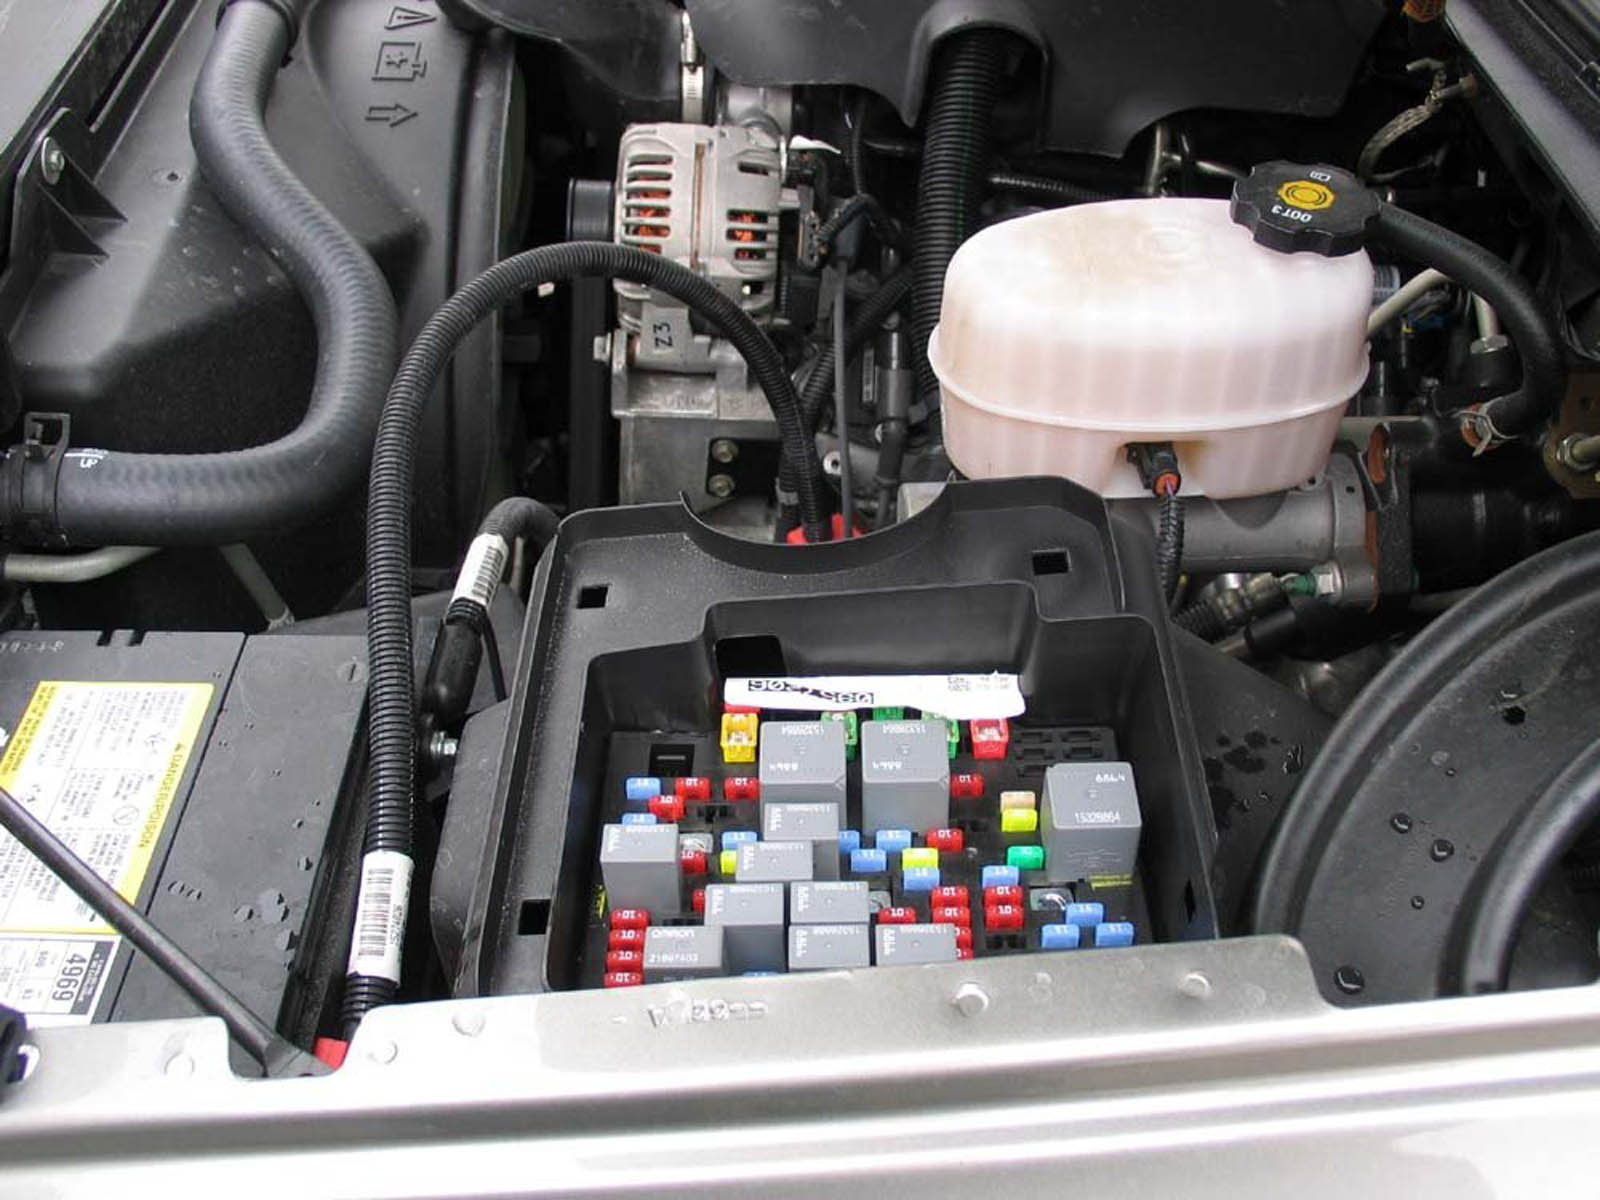 chevrolet silverado gmt800 1999 2006 fuse box diagram chevroletforum 93 Chevy S10 Fuse Box Diagram 2000 Chevy S10 Fuse Box Diagram